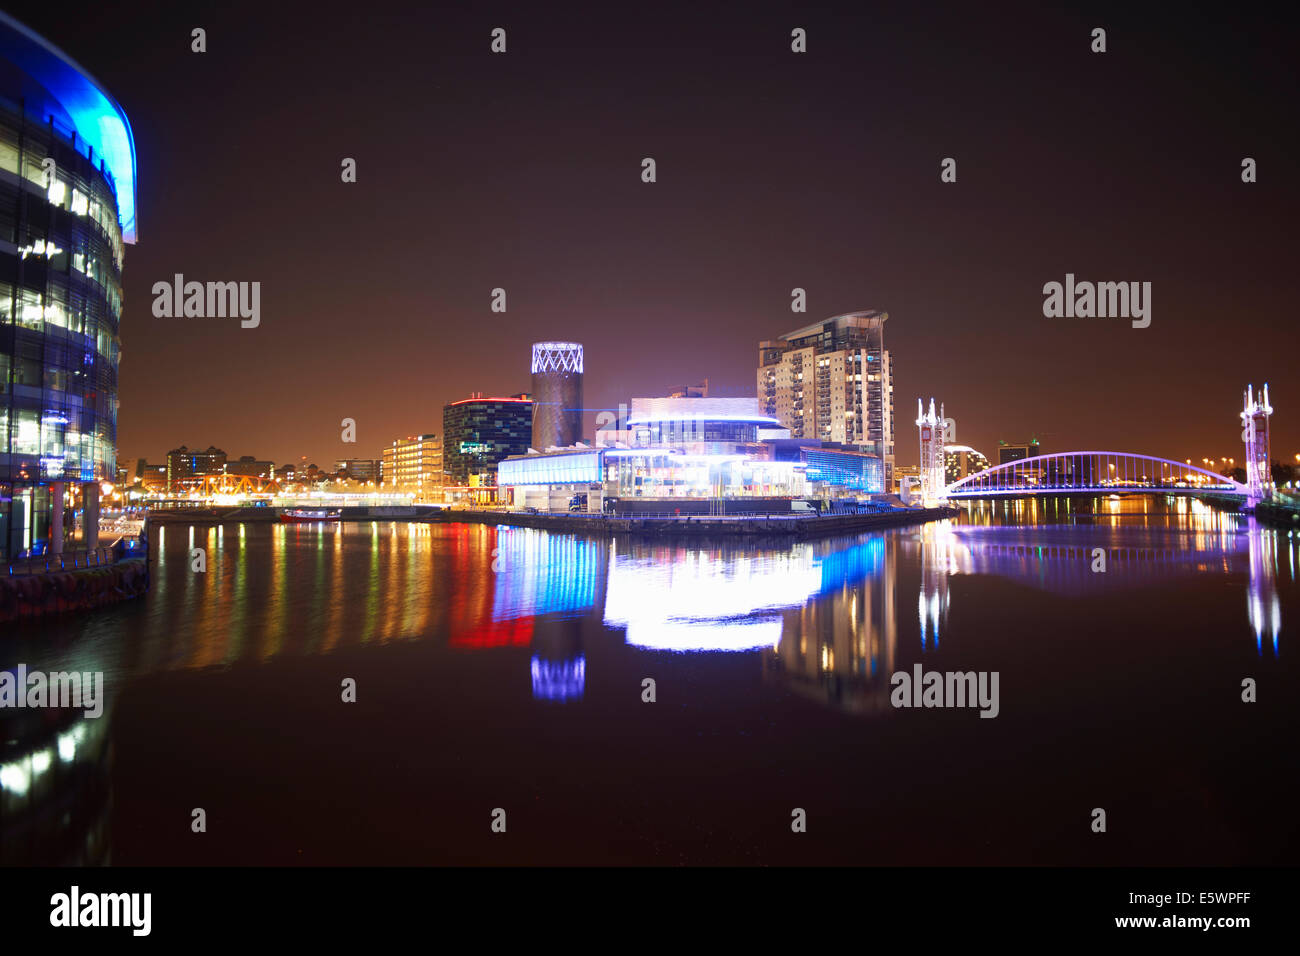 Media City and canal at night, Manchester, UK - Stock Image